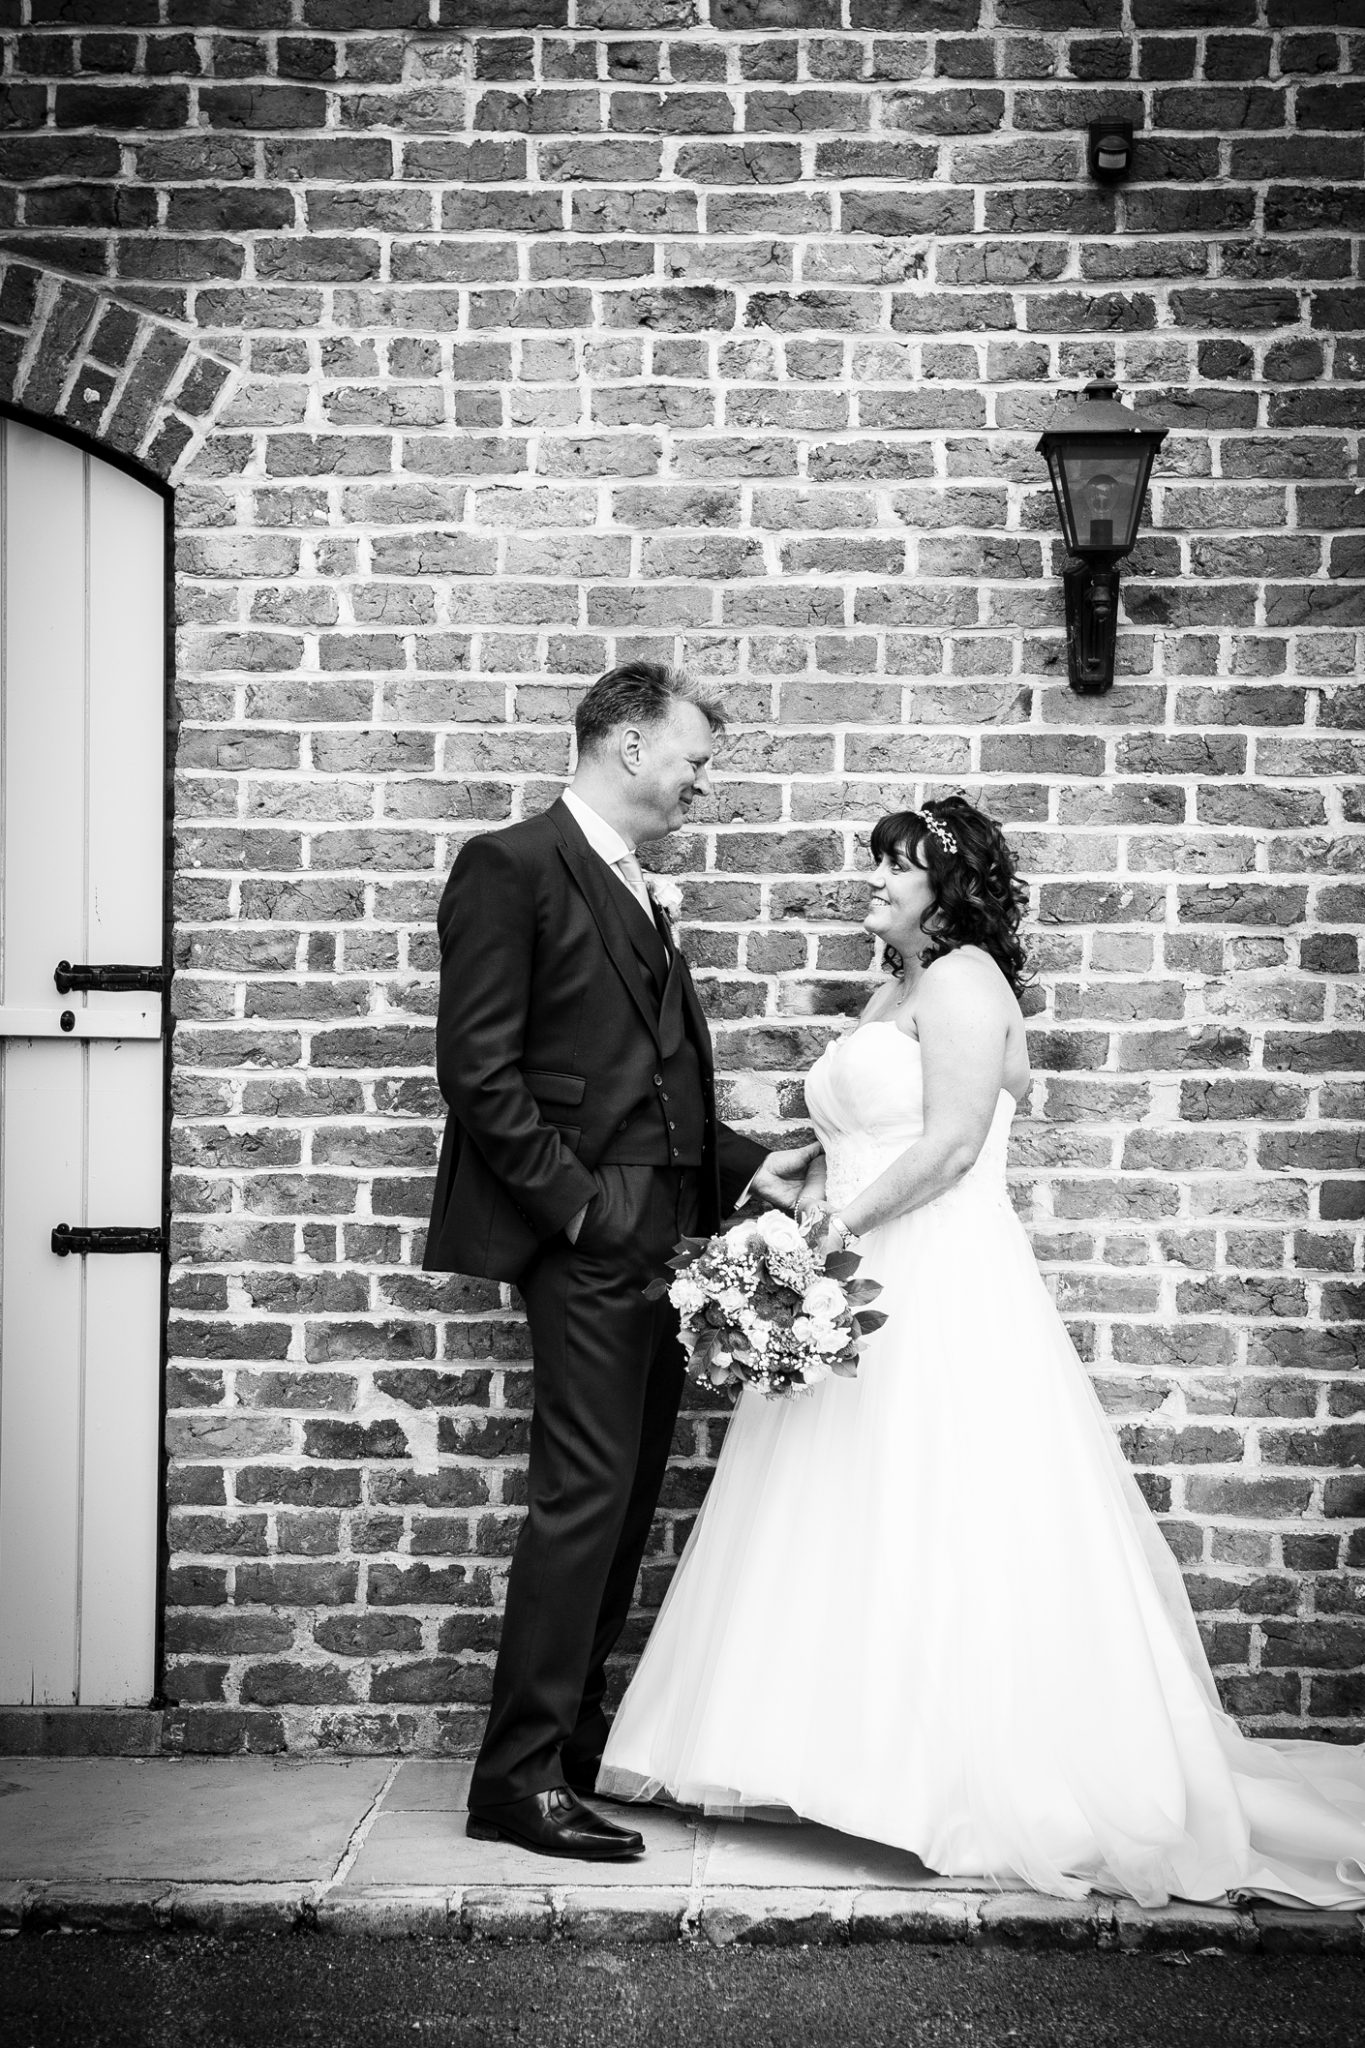 relaxed-wedding-photography-in-the-grounds-of-merrydale-manor-knutsford-cheshire-